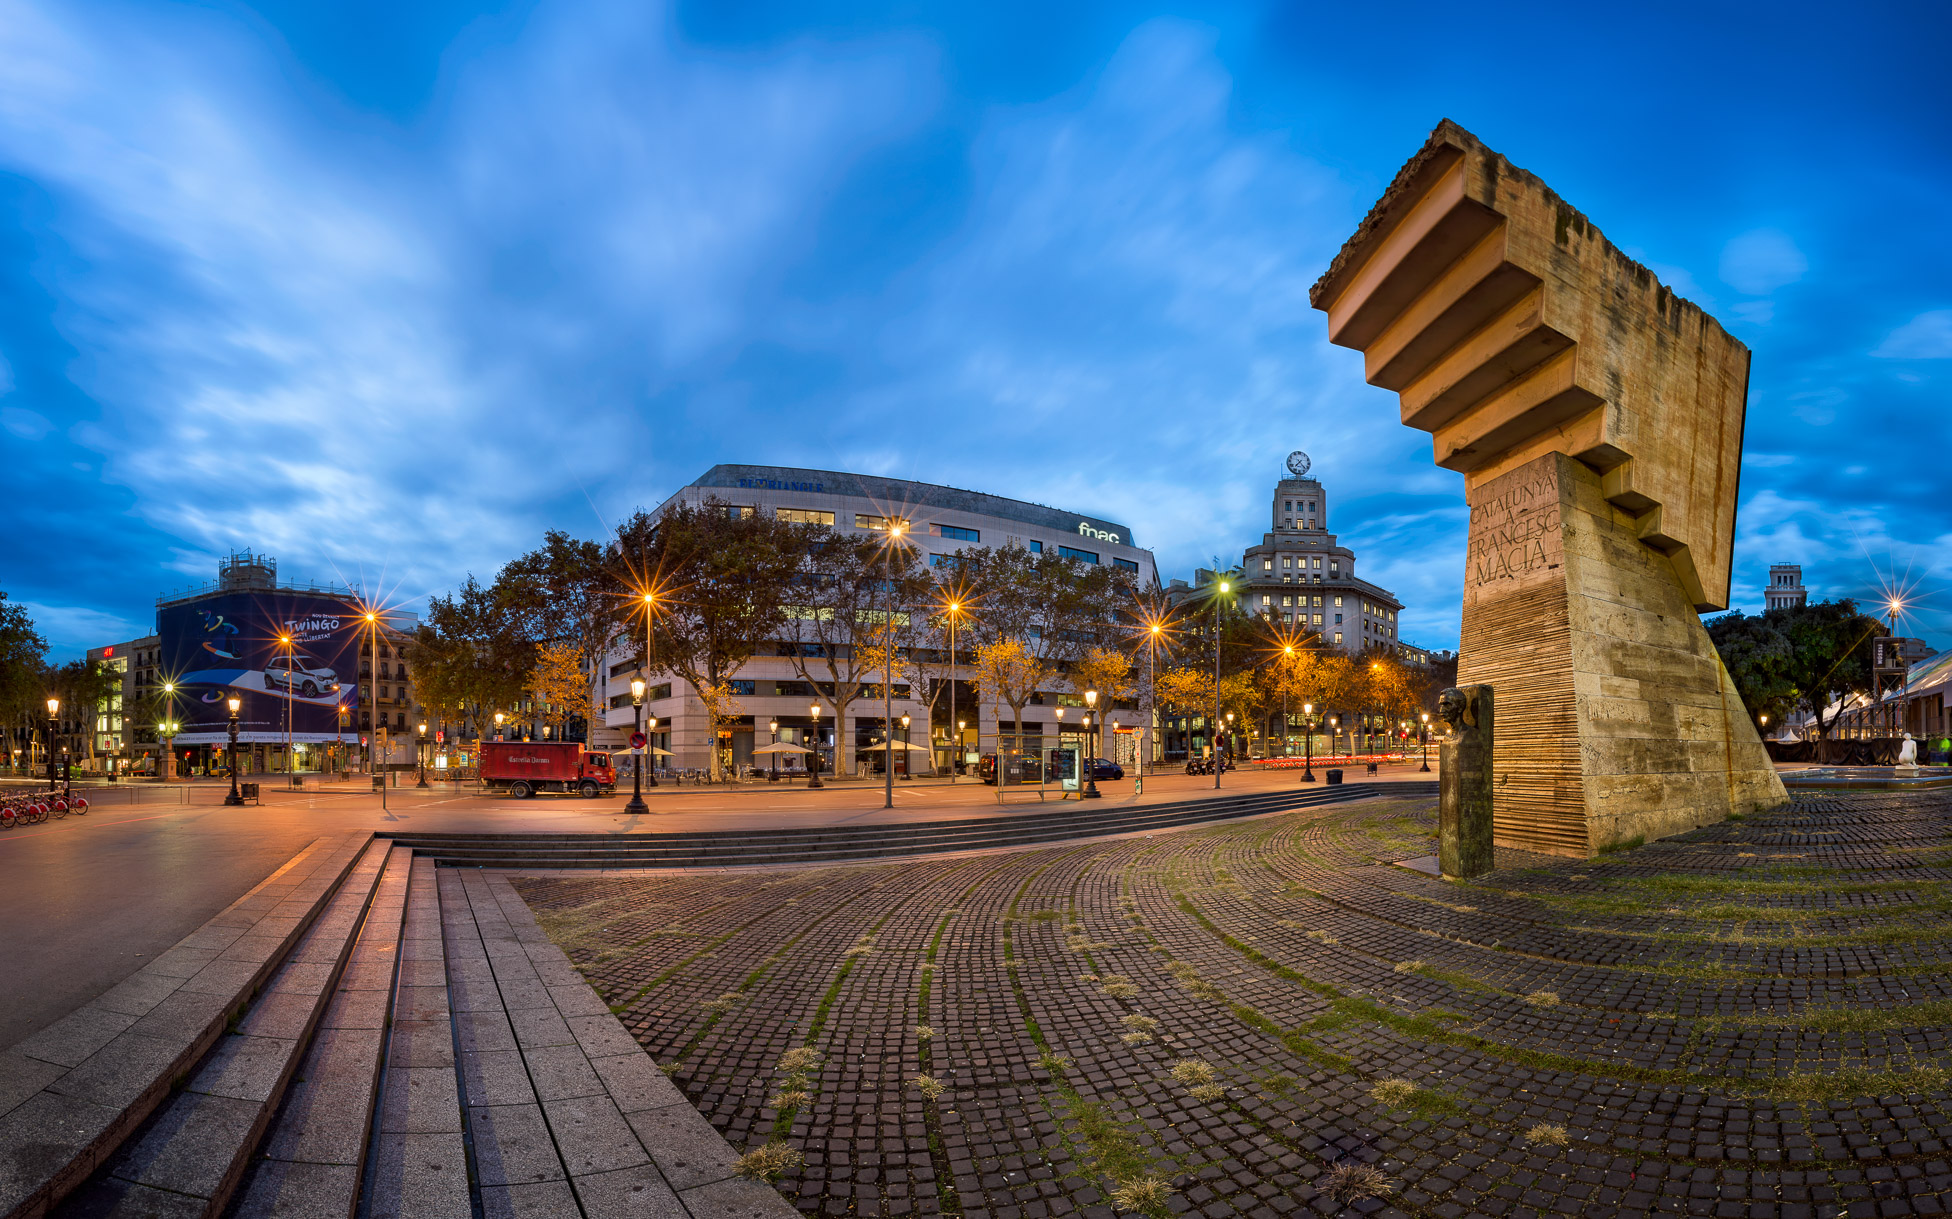 Panorama of Placa de Catalunya in the Morning, Barcelona, Spain